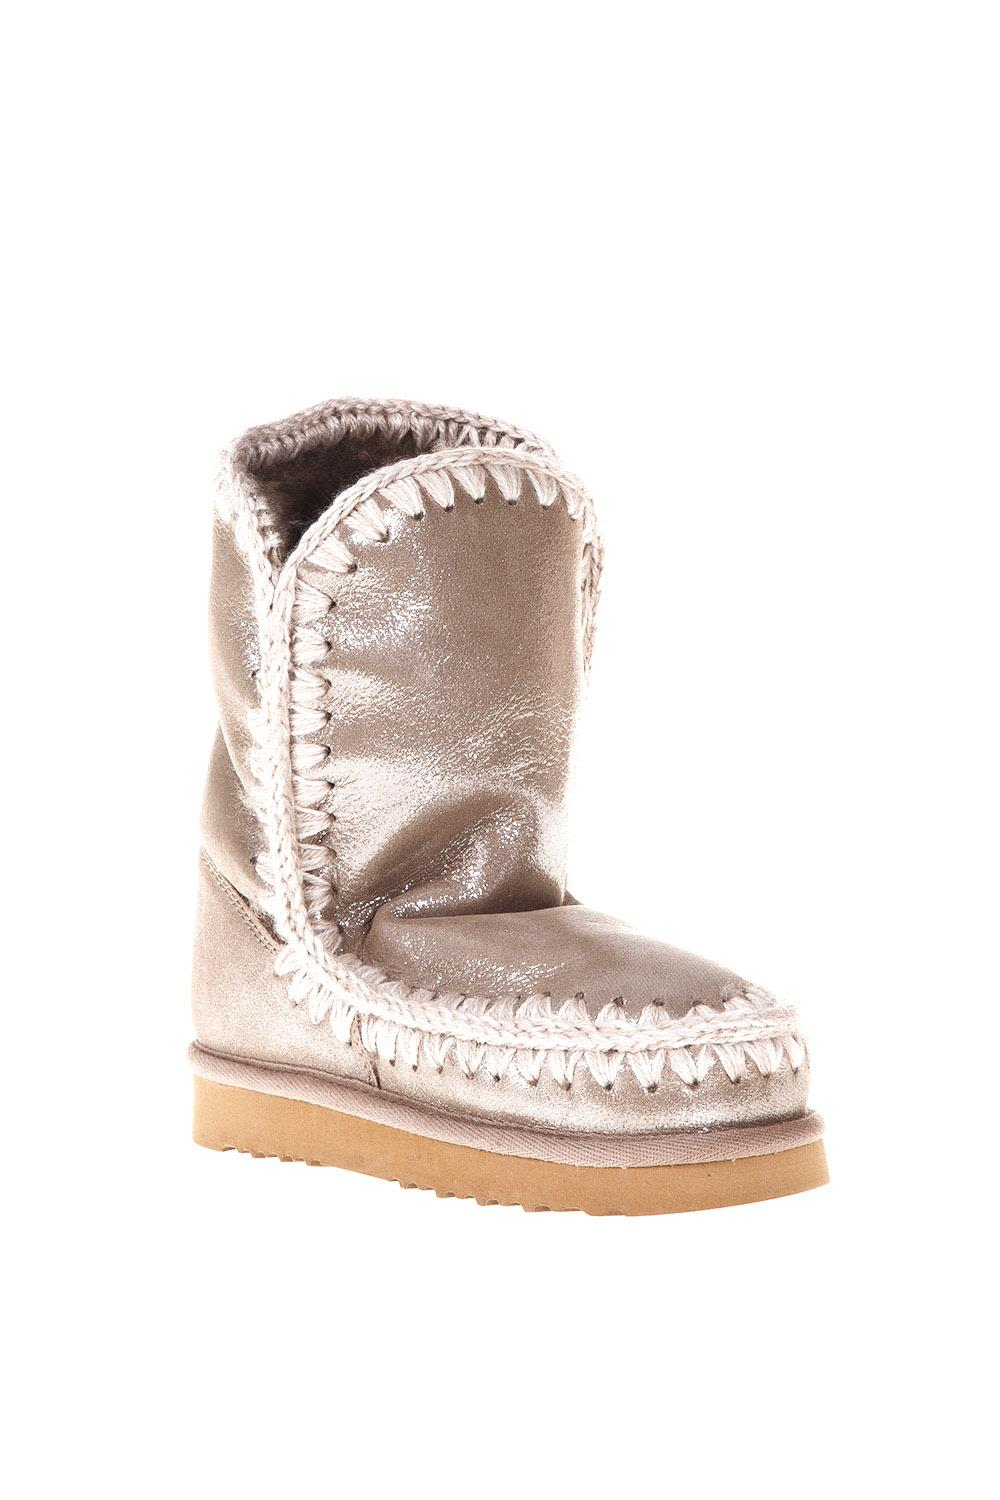 Outlet Great Deals Mou Eskimo 24 Micro Glitter Shearling Boots Cheap Clearance Store Cheap Sale The Cheapest Original Cheap Online 8goJ5XW